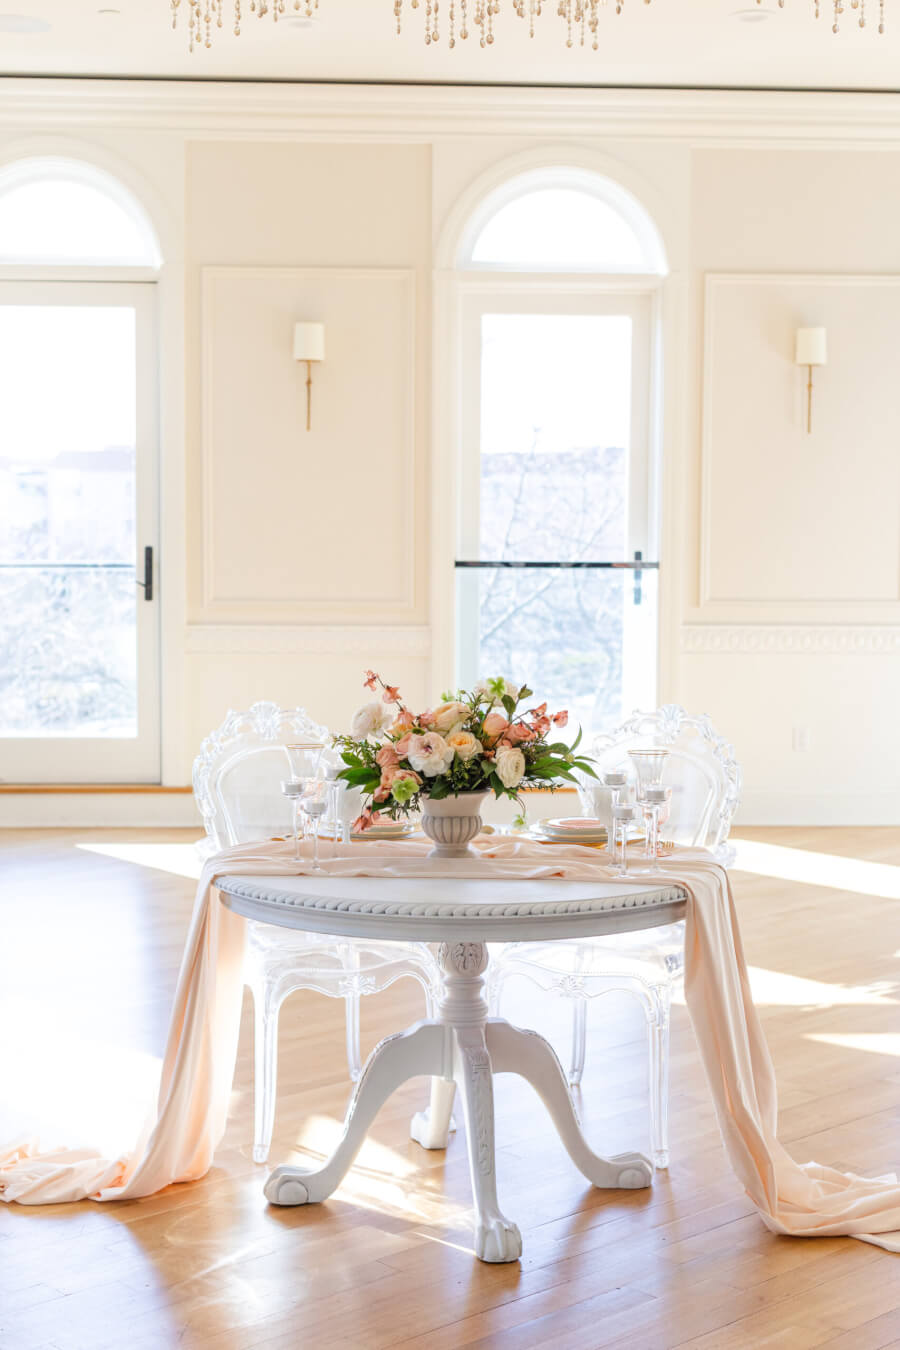 French Round White Sweetheart Table